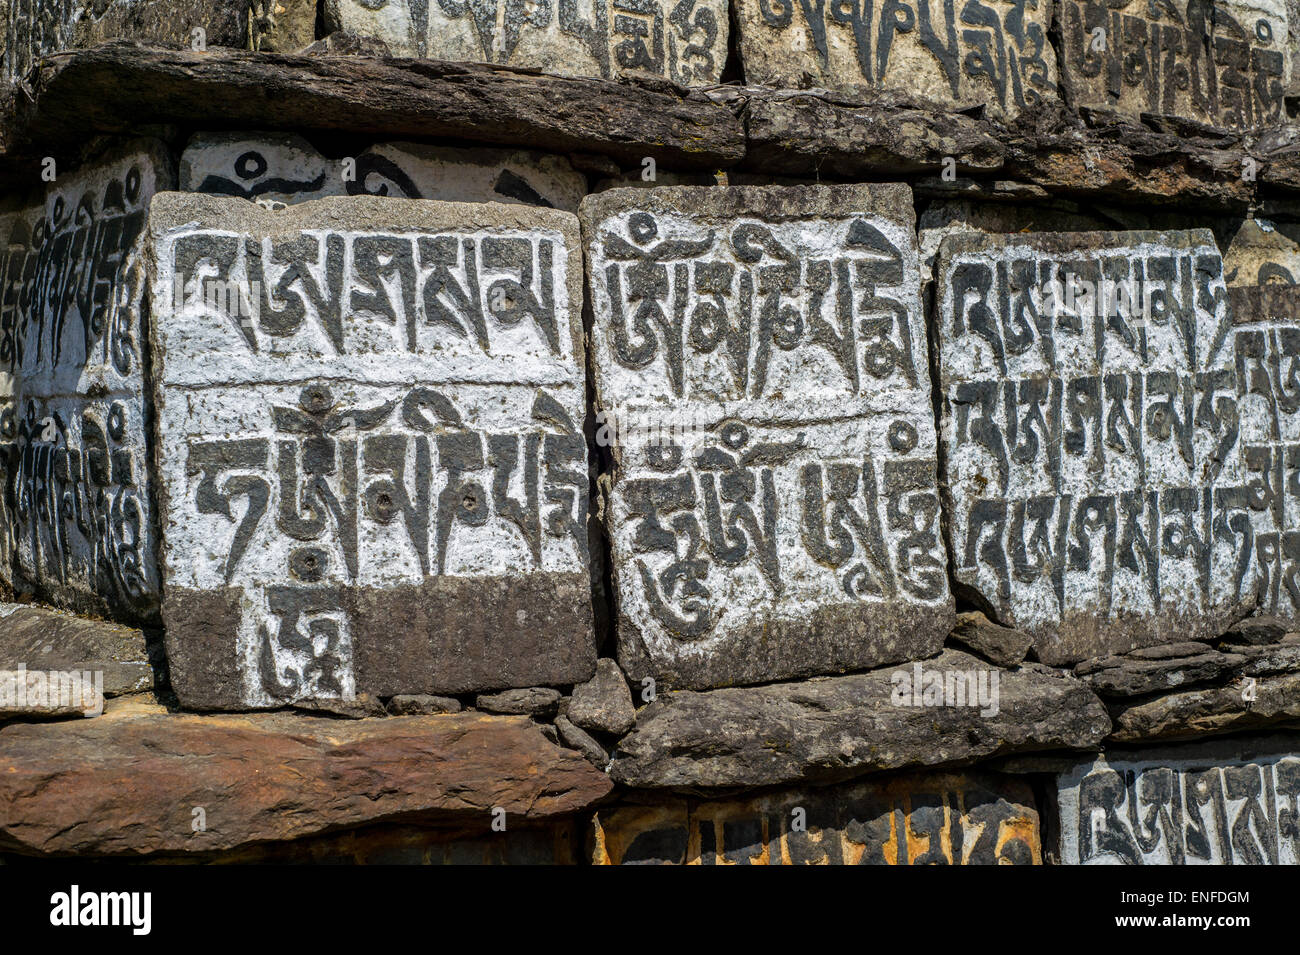 Old Mani Stones inscribed with a Buddhist mantra in the Himalaya region, Nepal - Stock Image